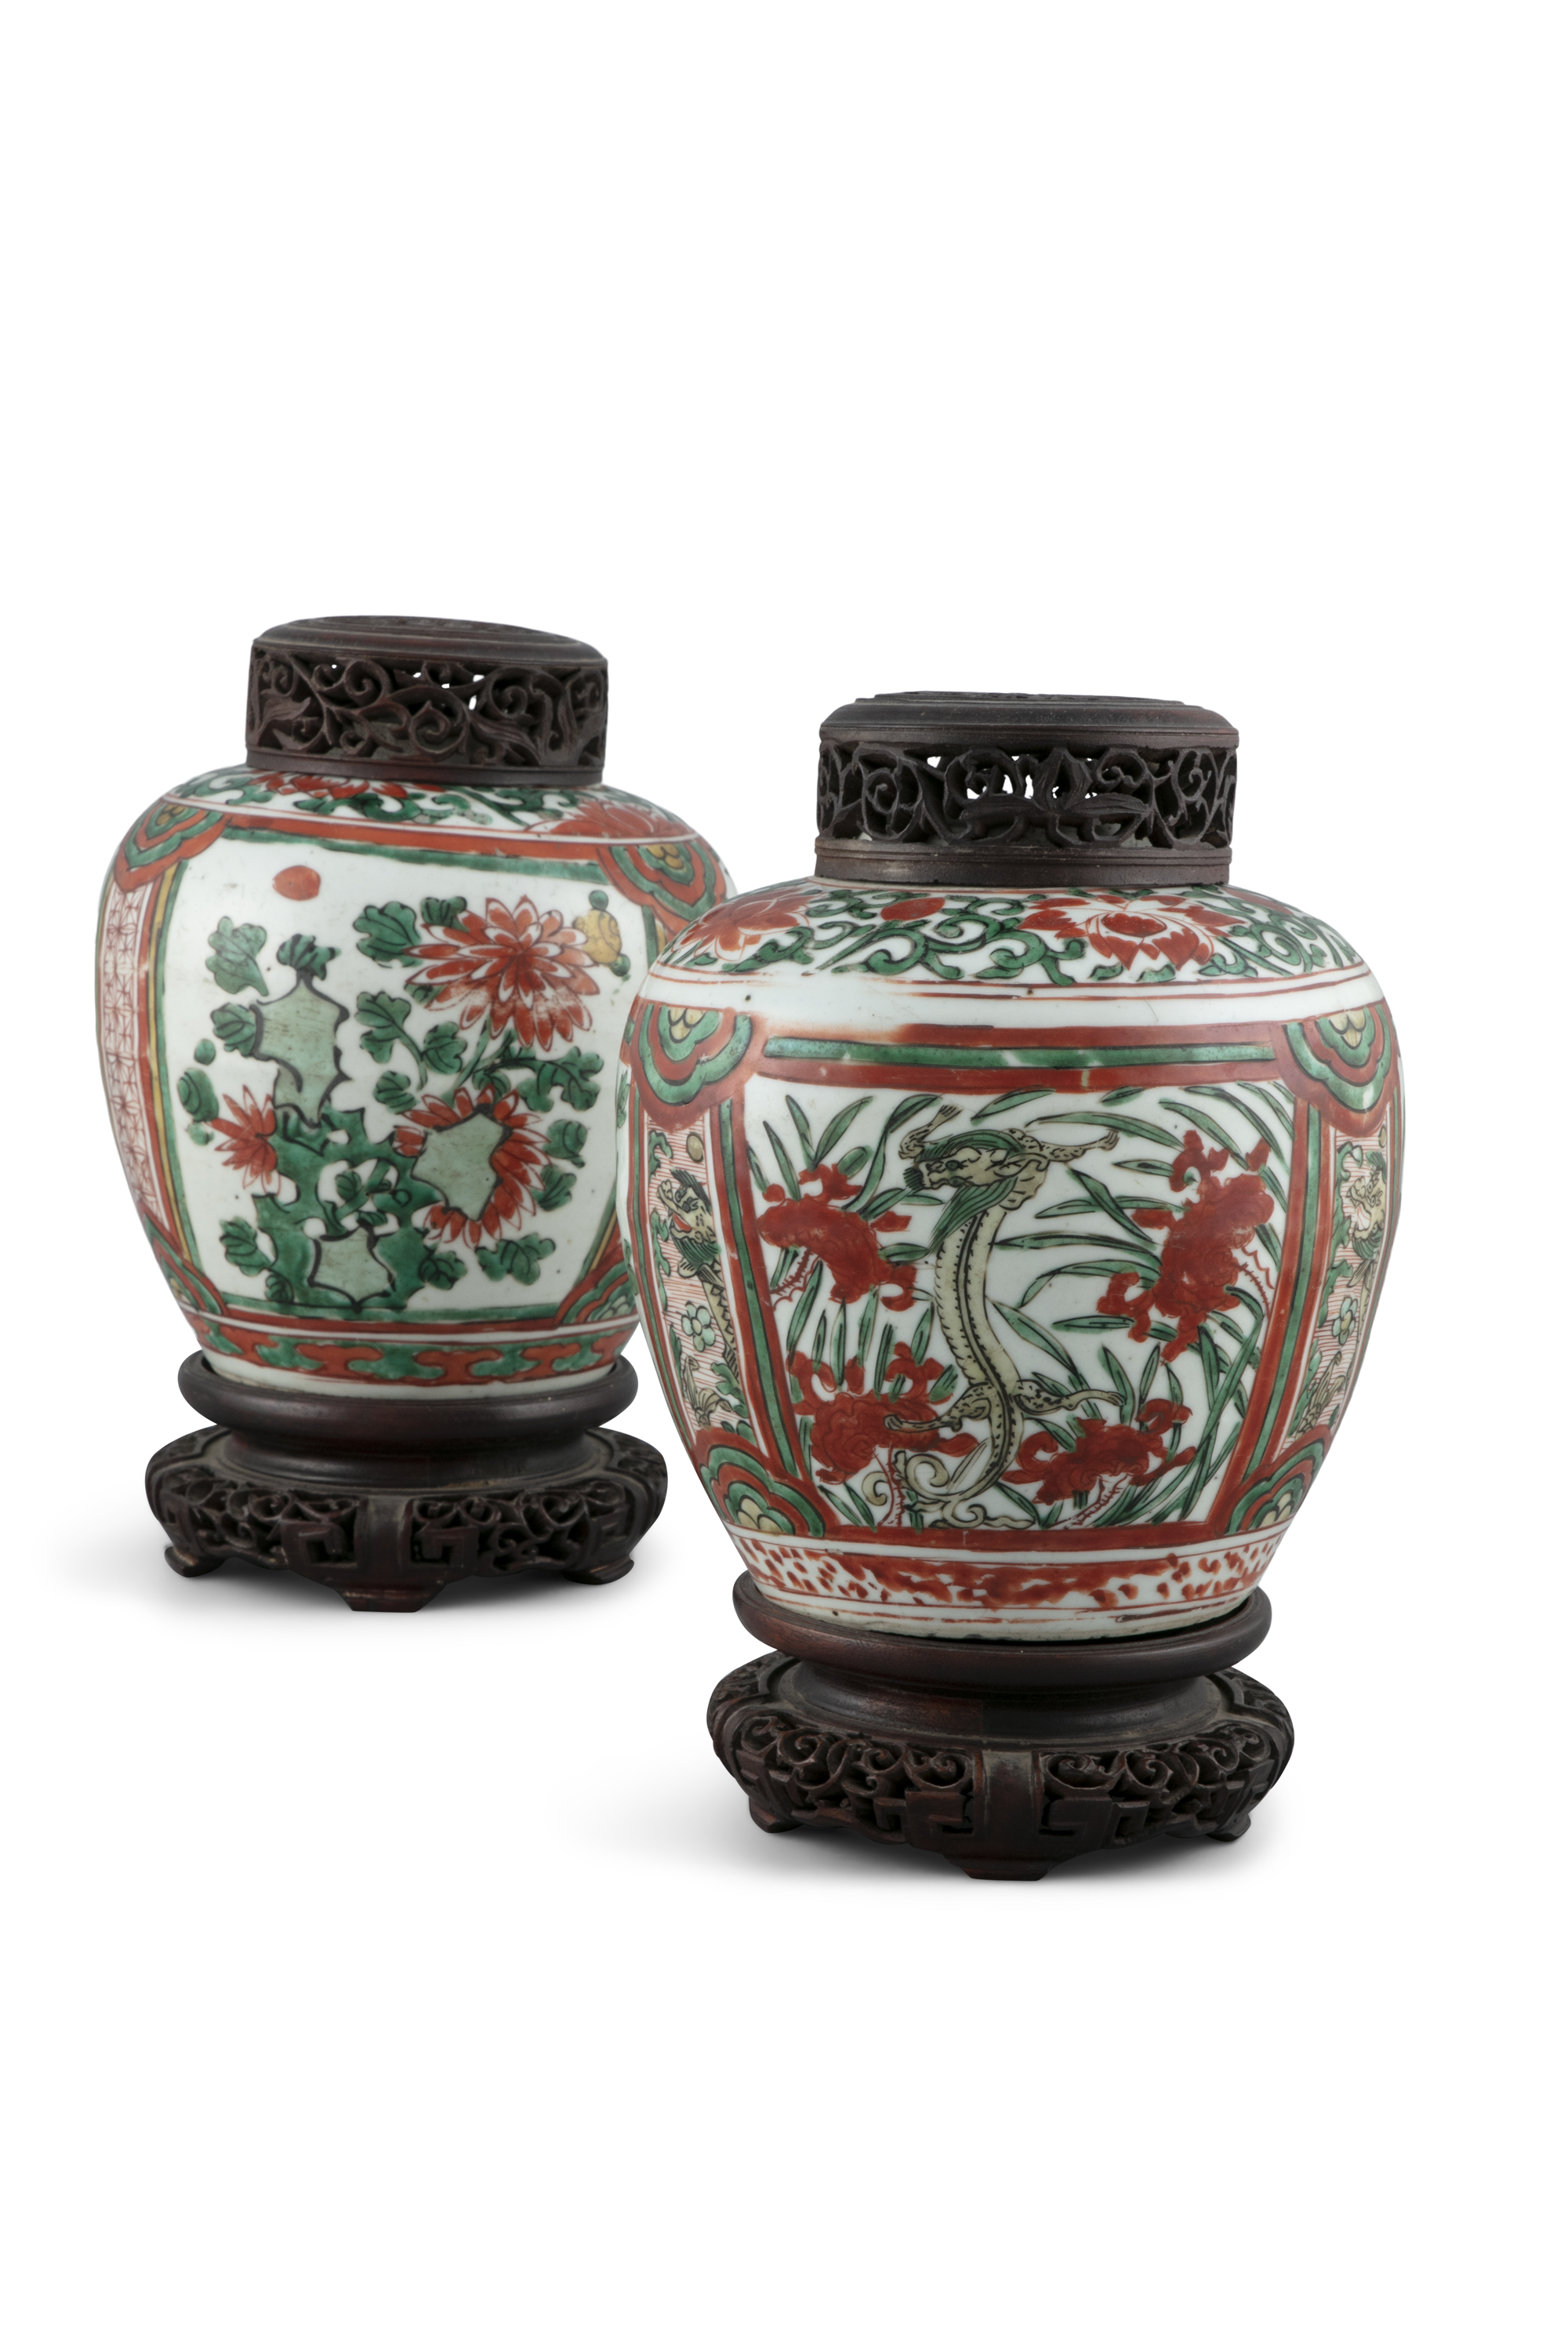 A NEAR PAIR OF WUCAI 'CHI DRAGONS' PORCELAIN GINGER JARS China, Transitional period, 17th century - Image 2 of 17